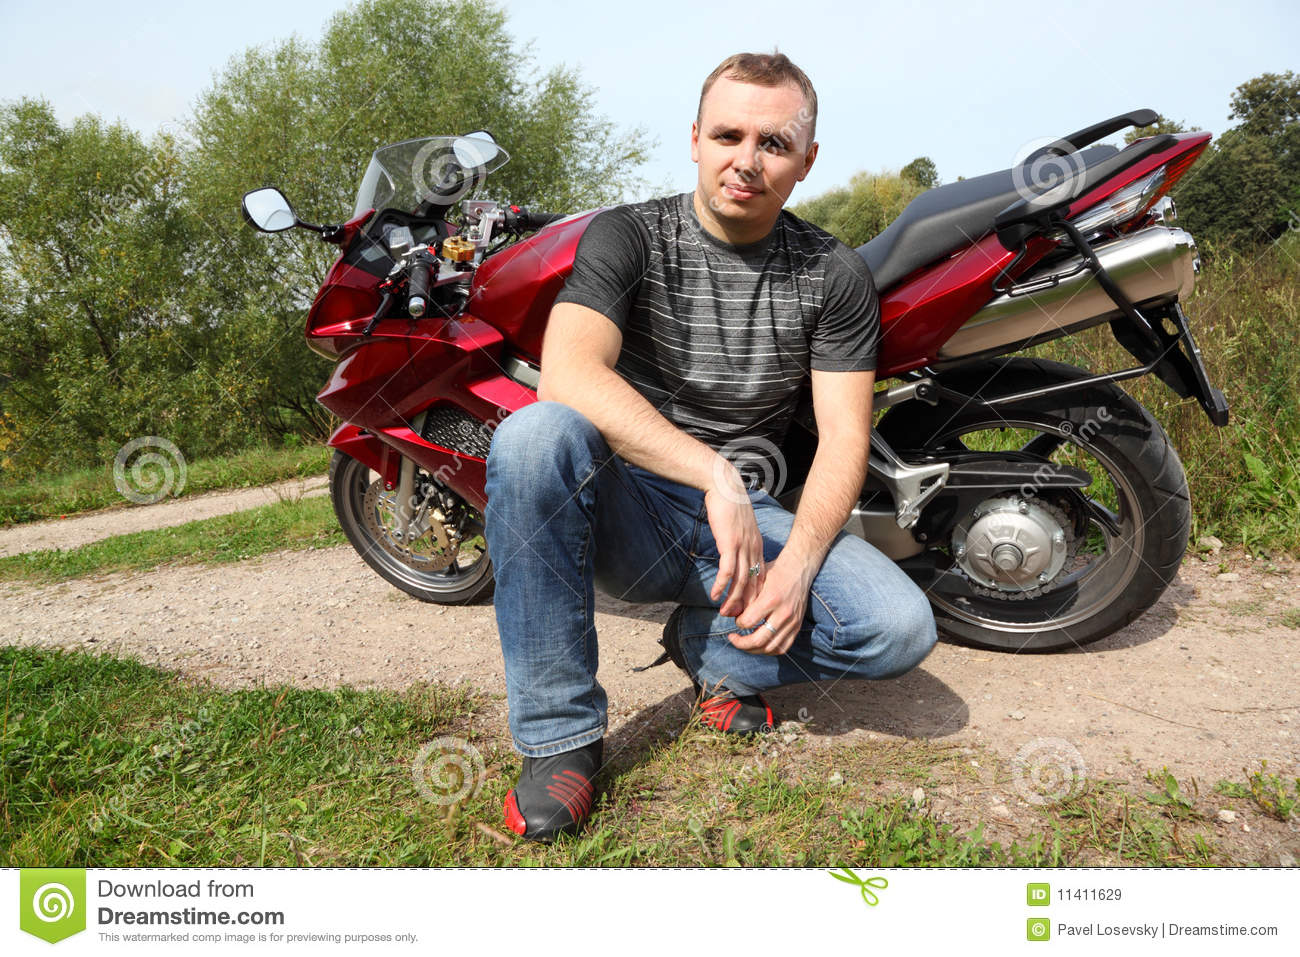 Motorcyclist sitting on country road near bike